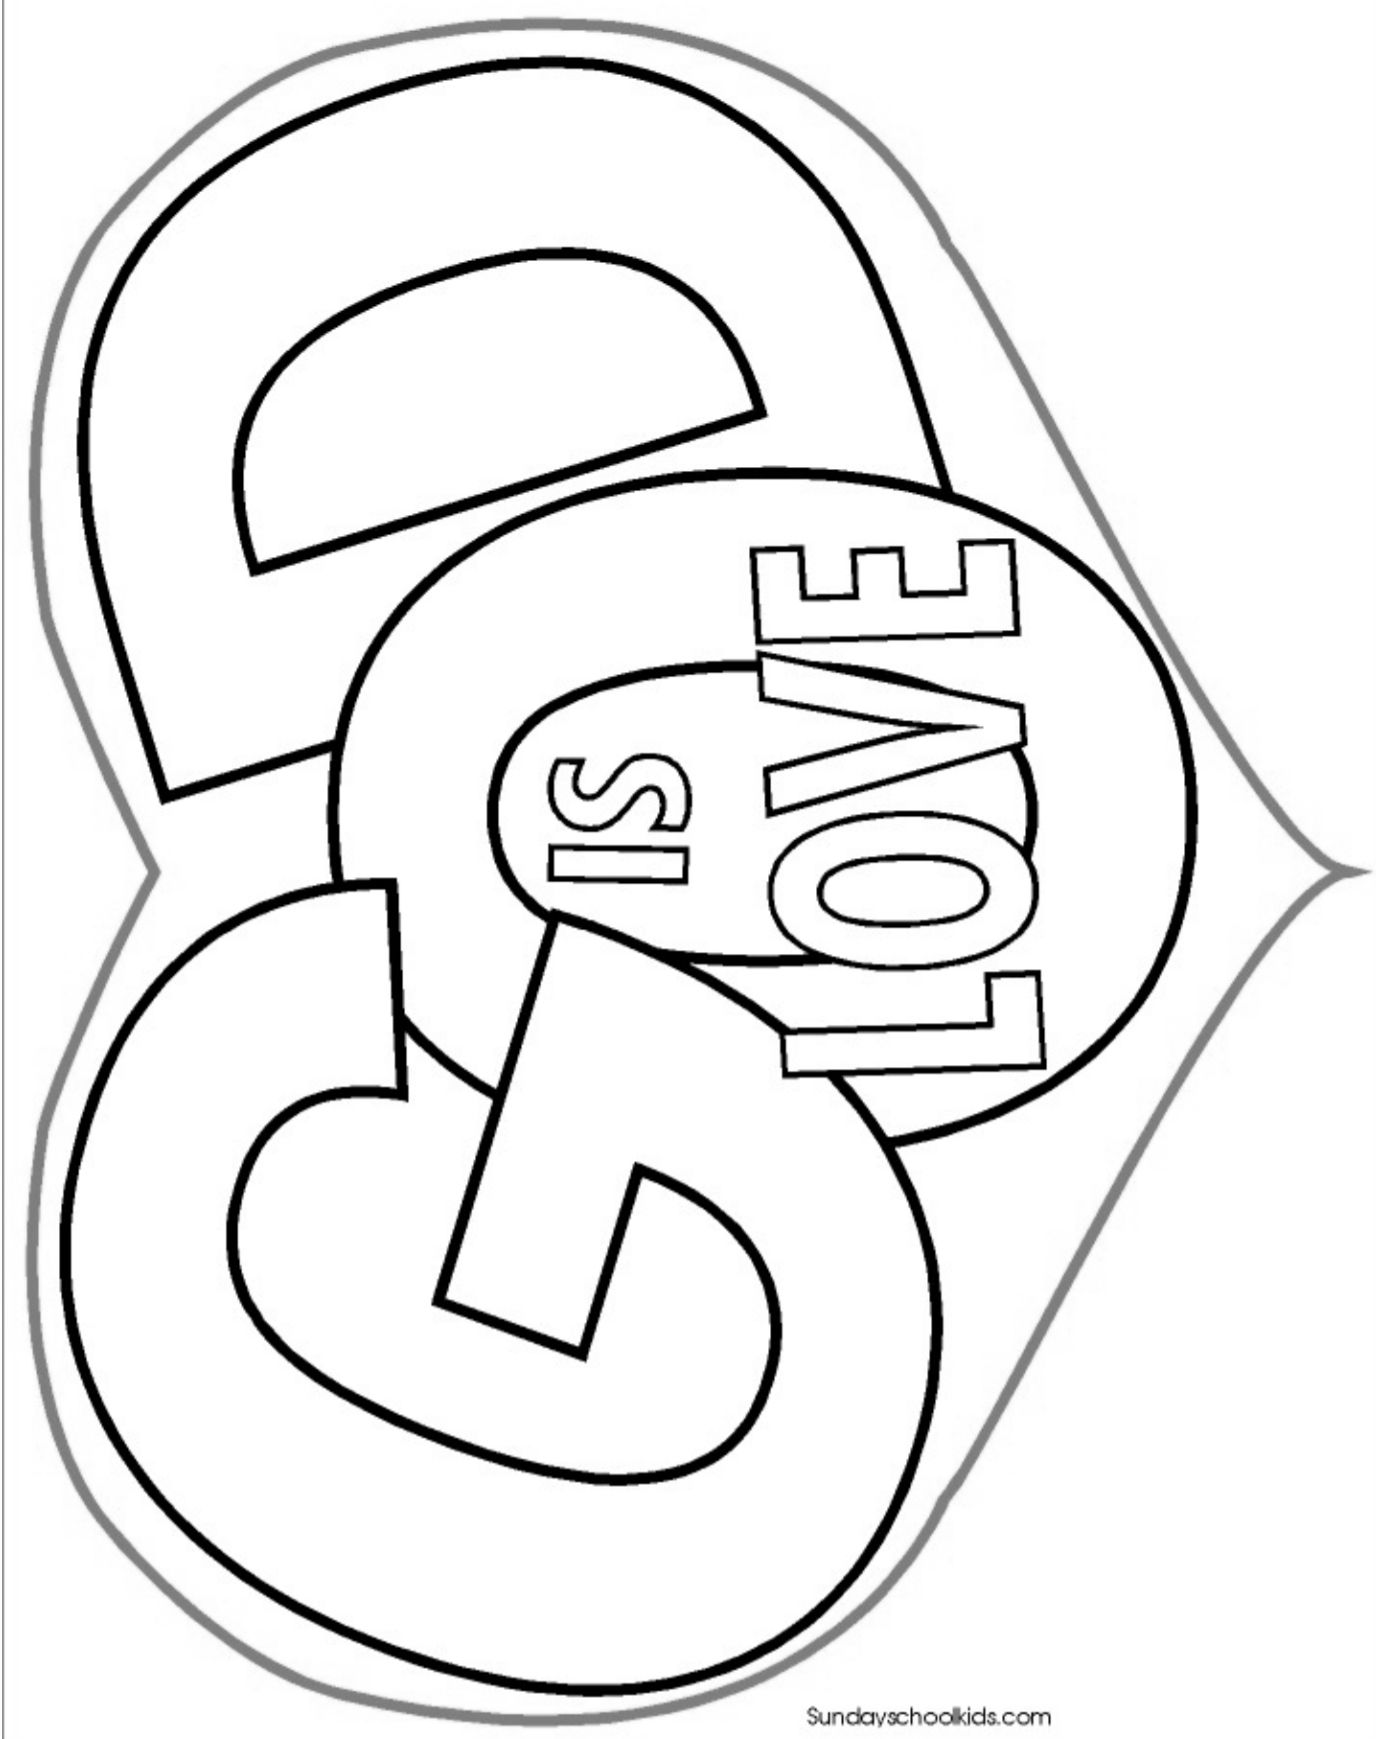 God is Love  Sunday school coloring pages, Sunday school coloring